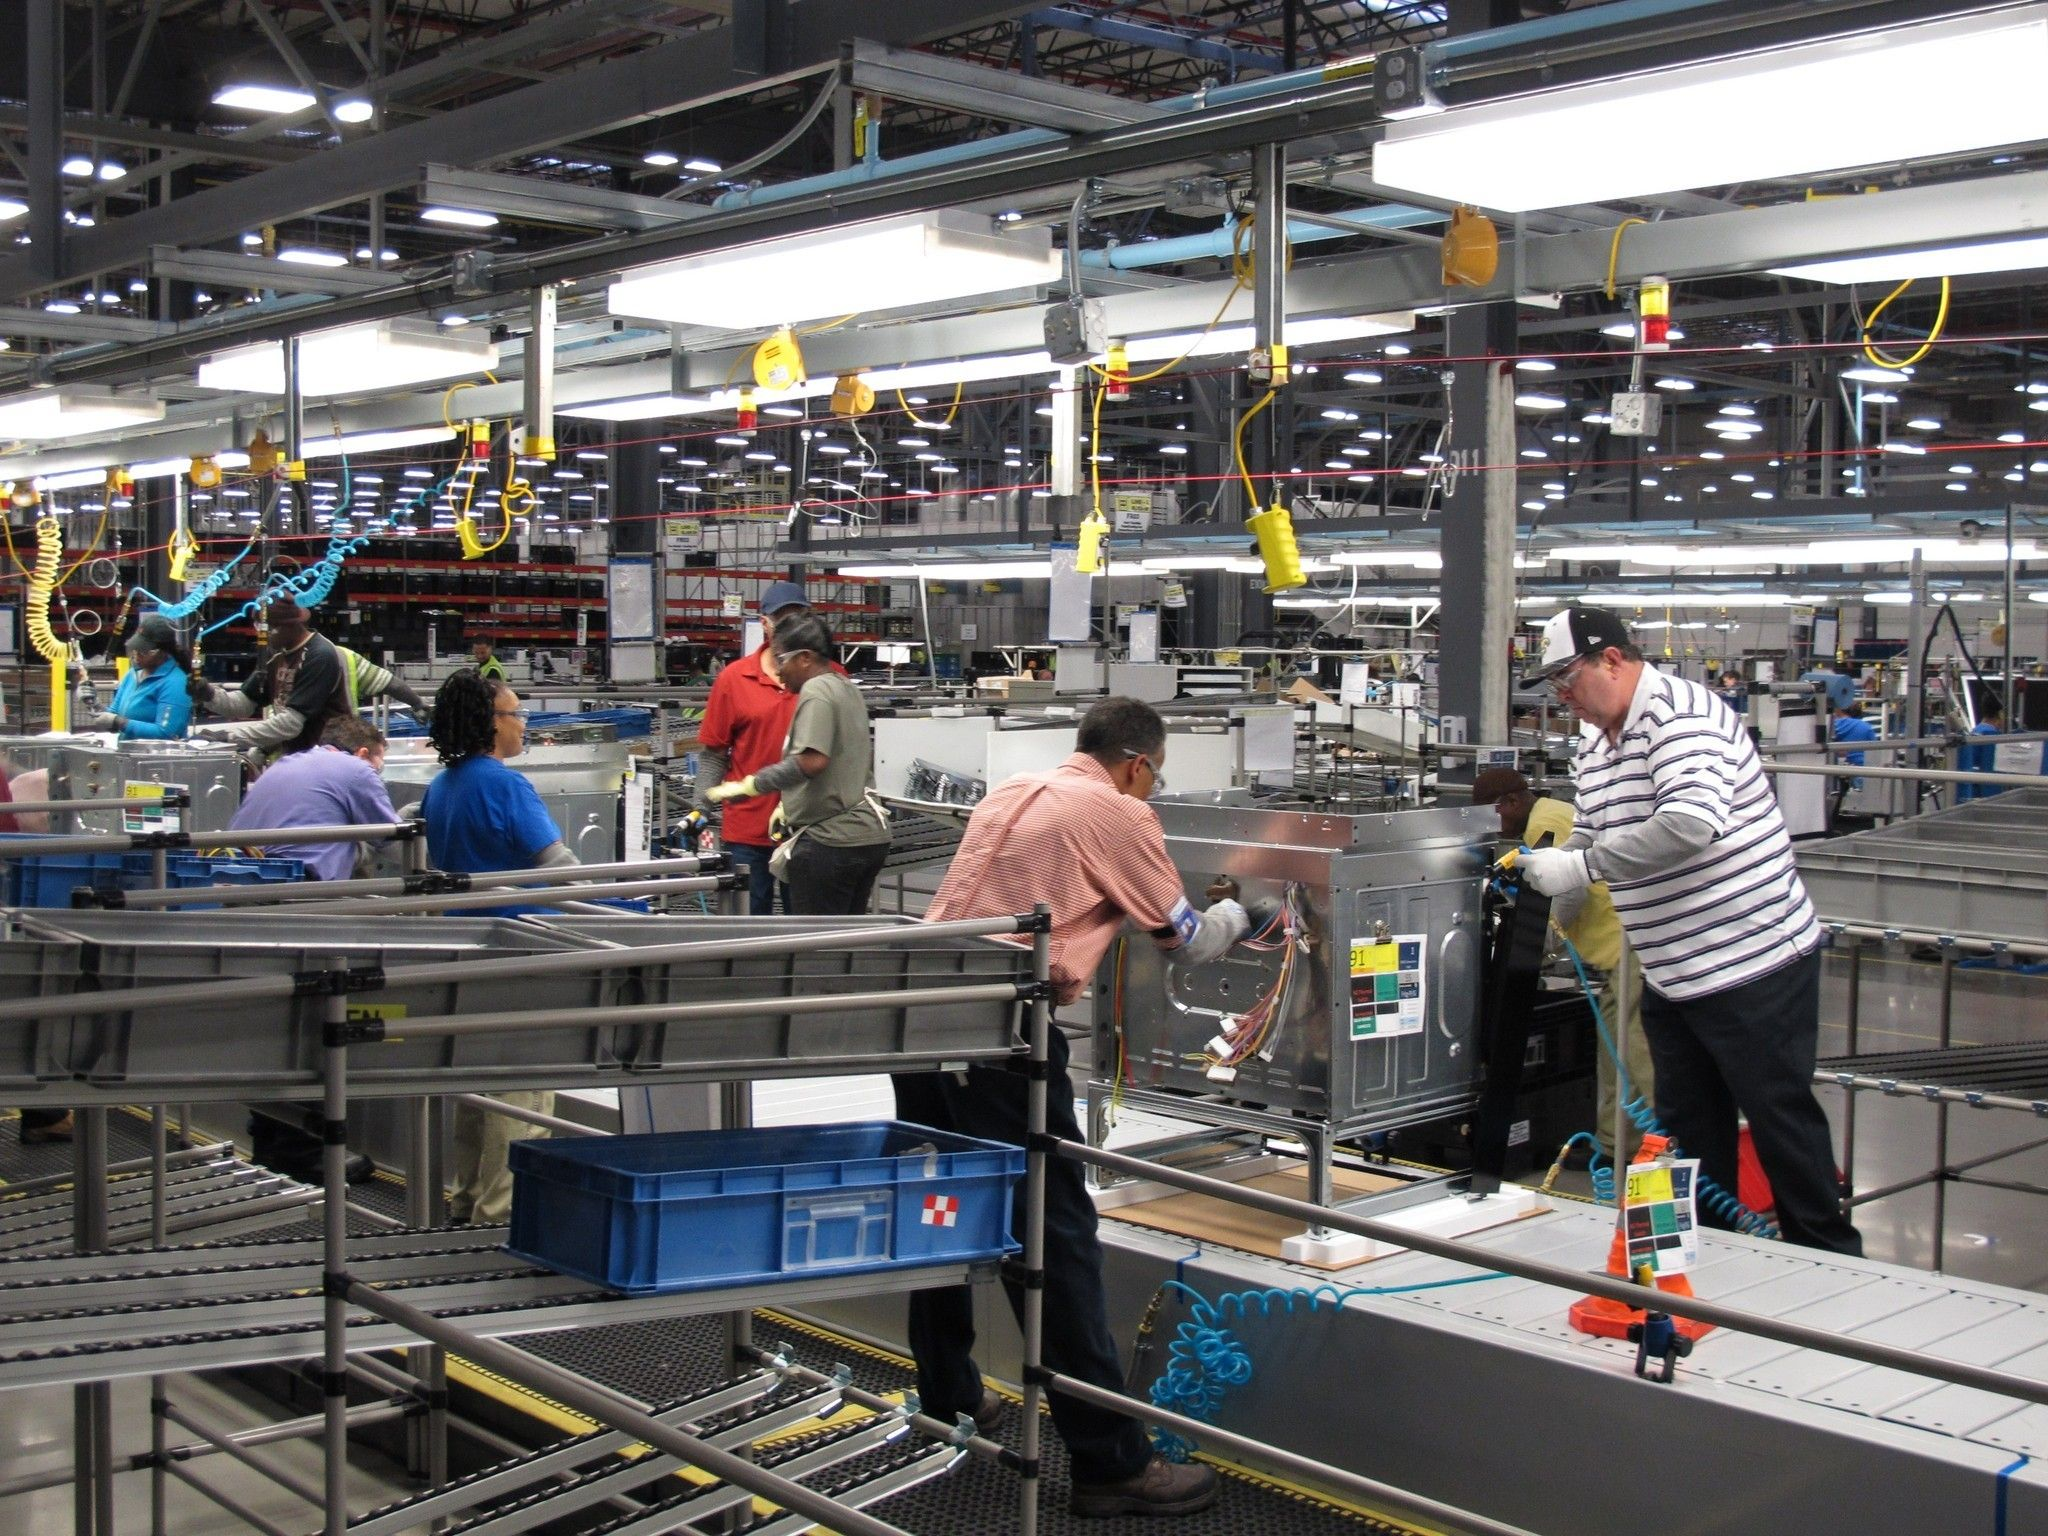 Industrial production Supply management, State of the